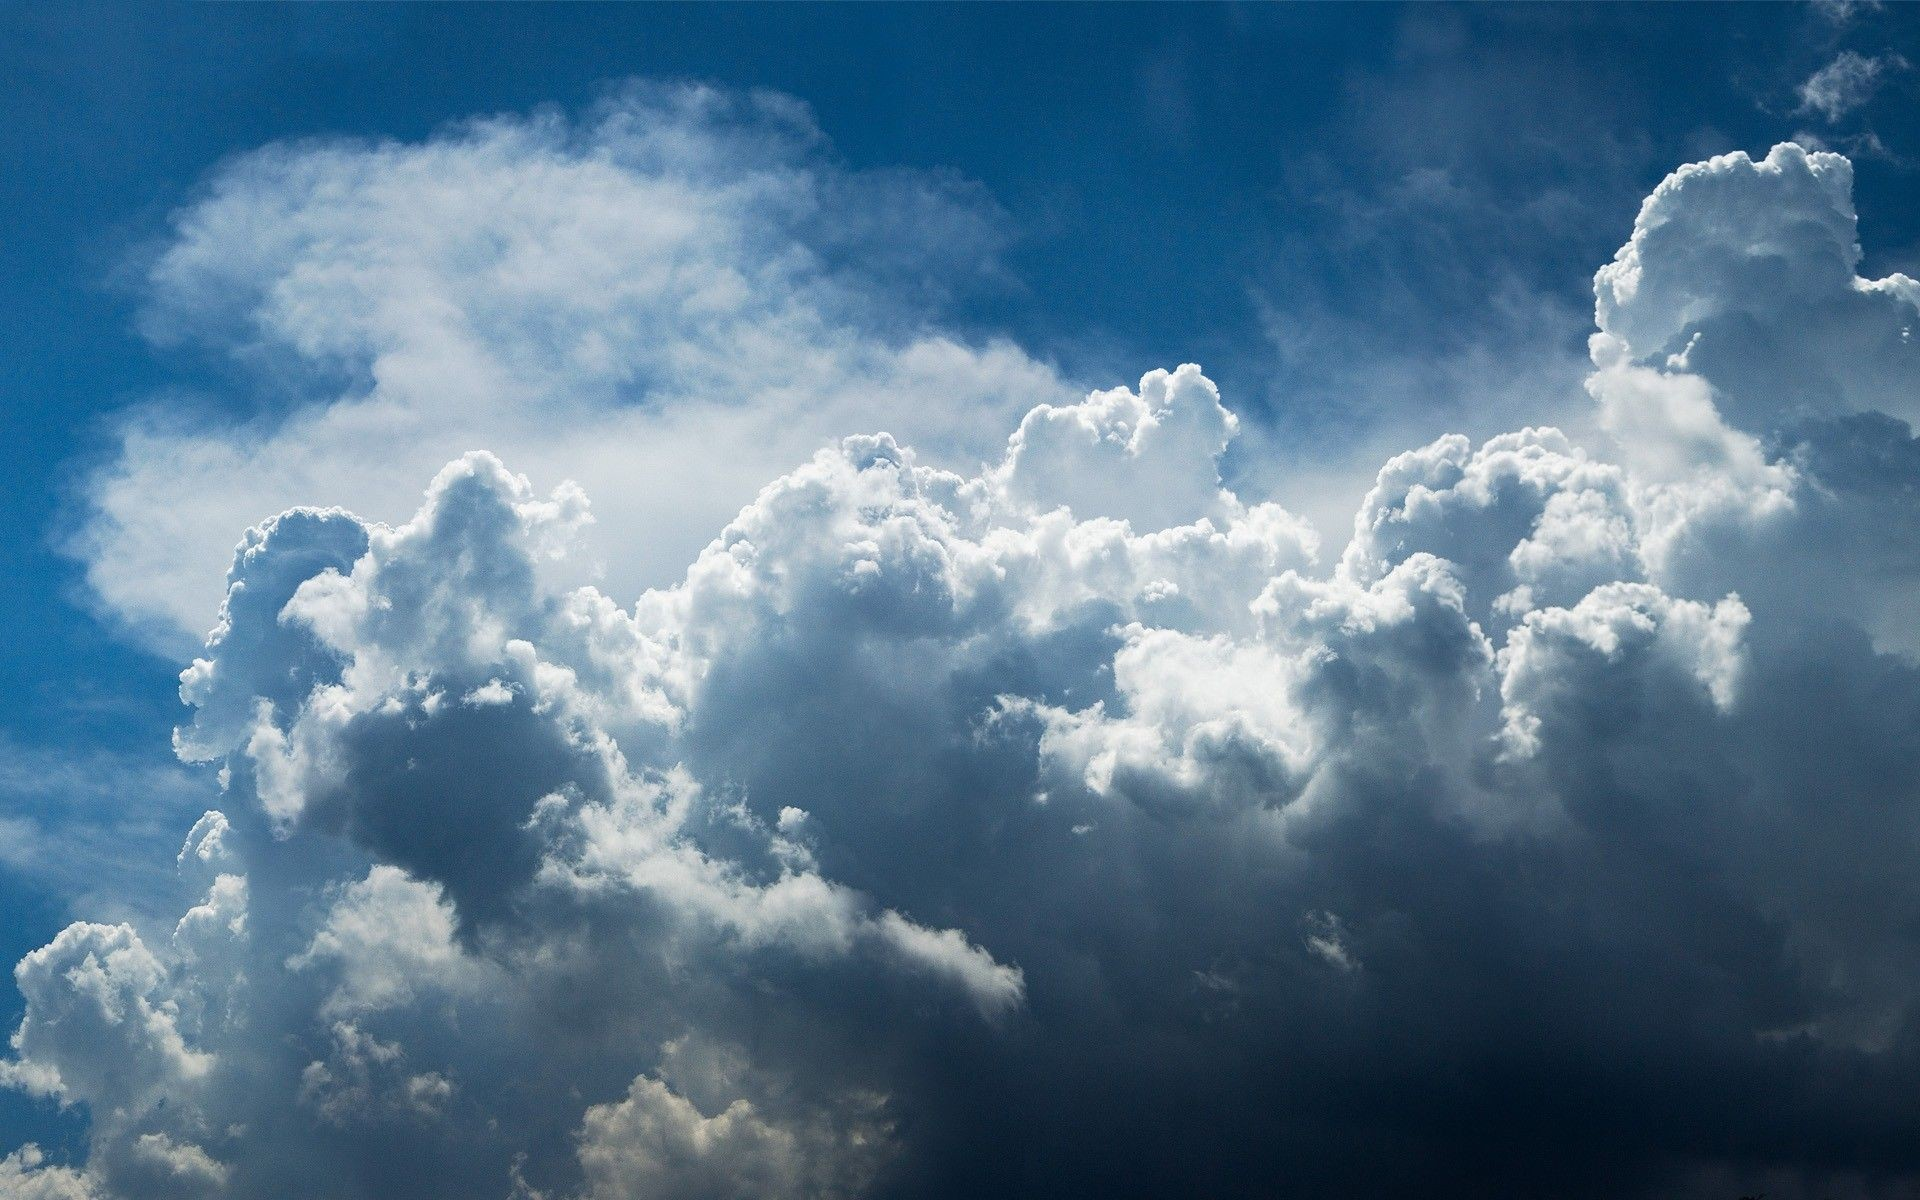 Cloud wallpaper Download free High Resolution backgrounds for